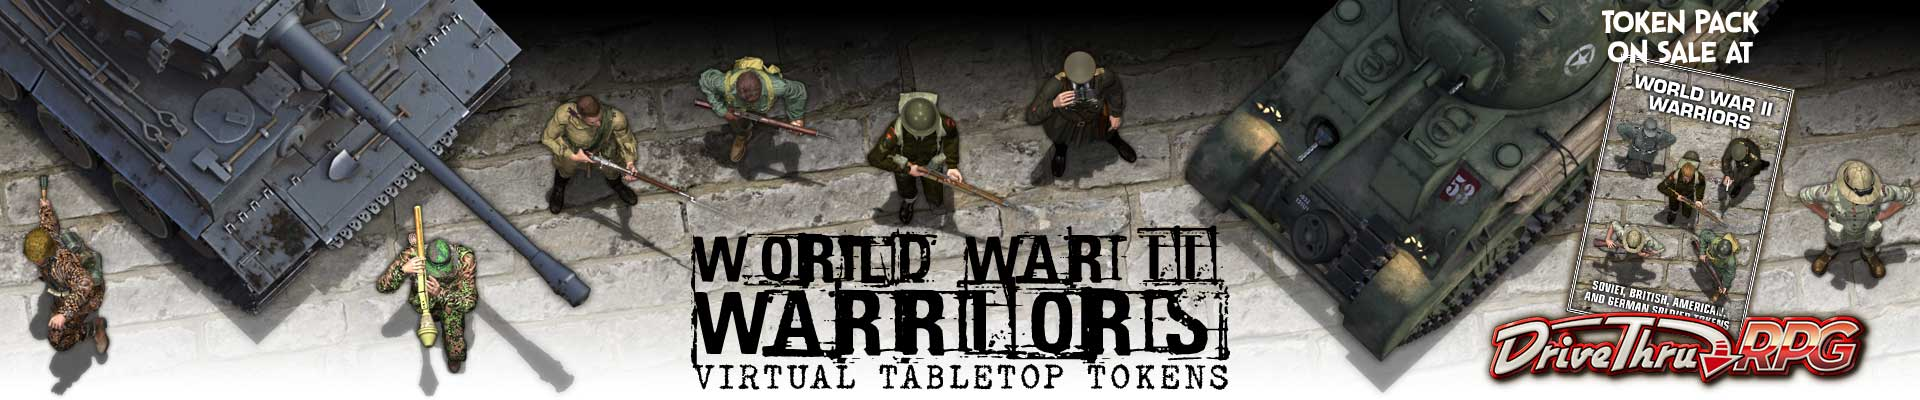 World War II Warriors Token Pack